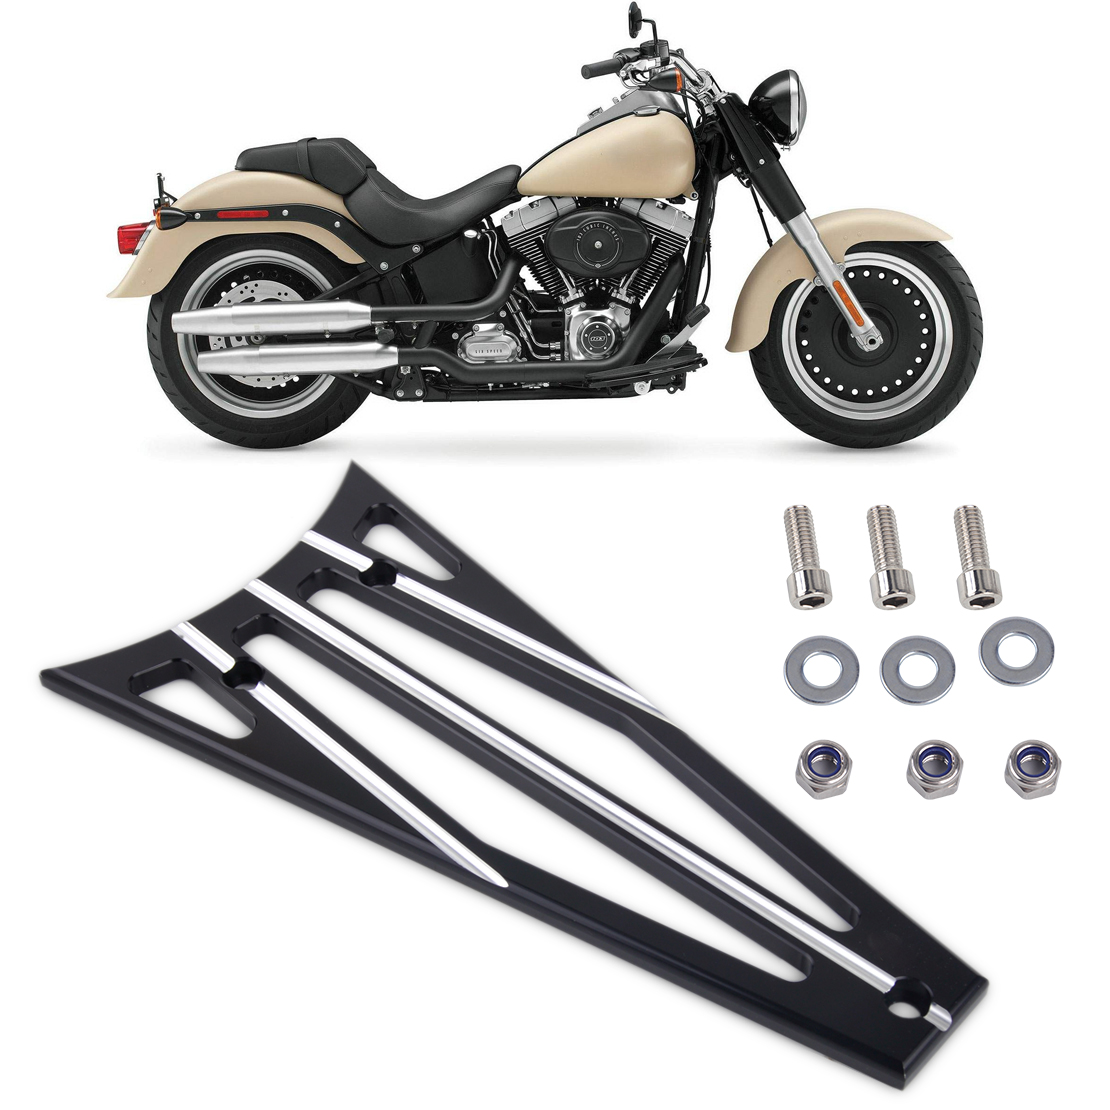 DWCX Motocycle 3 Columns Billet Deep Cut Frame Grill For Harley Electra Glide Road King Road Street Glide 2009 2010 - 2012 2013 12 inches male muscular body figures without neck for 1 6 scale mens head sculpts gifts collections toys